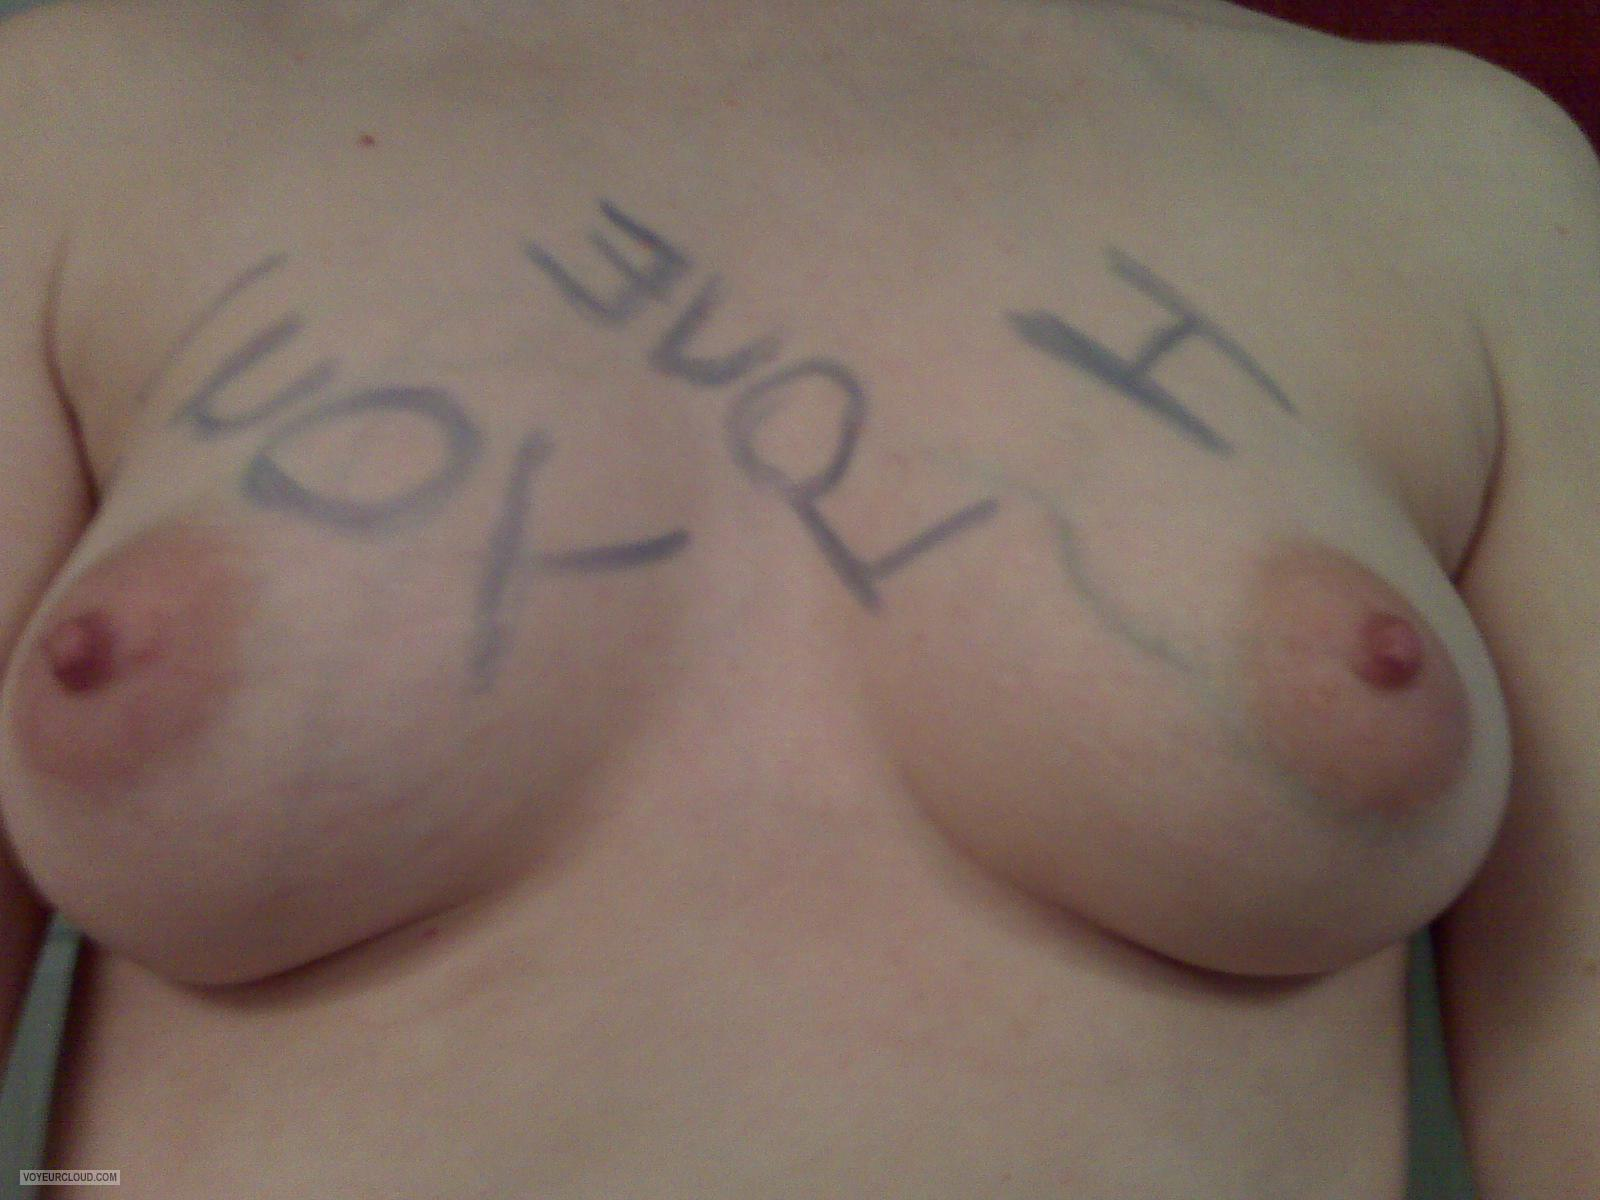 Small Tits Of My Wife Selfie by KKitty